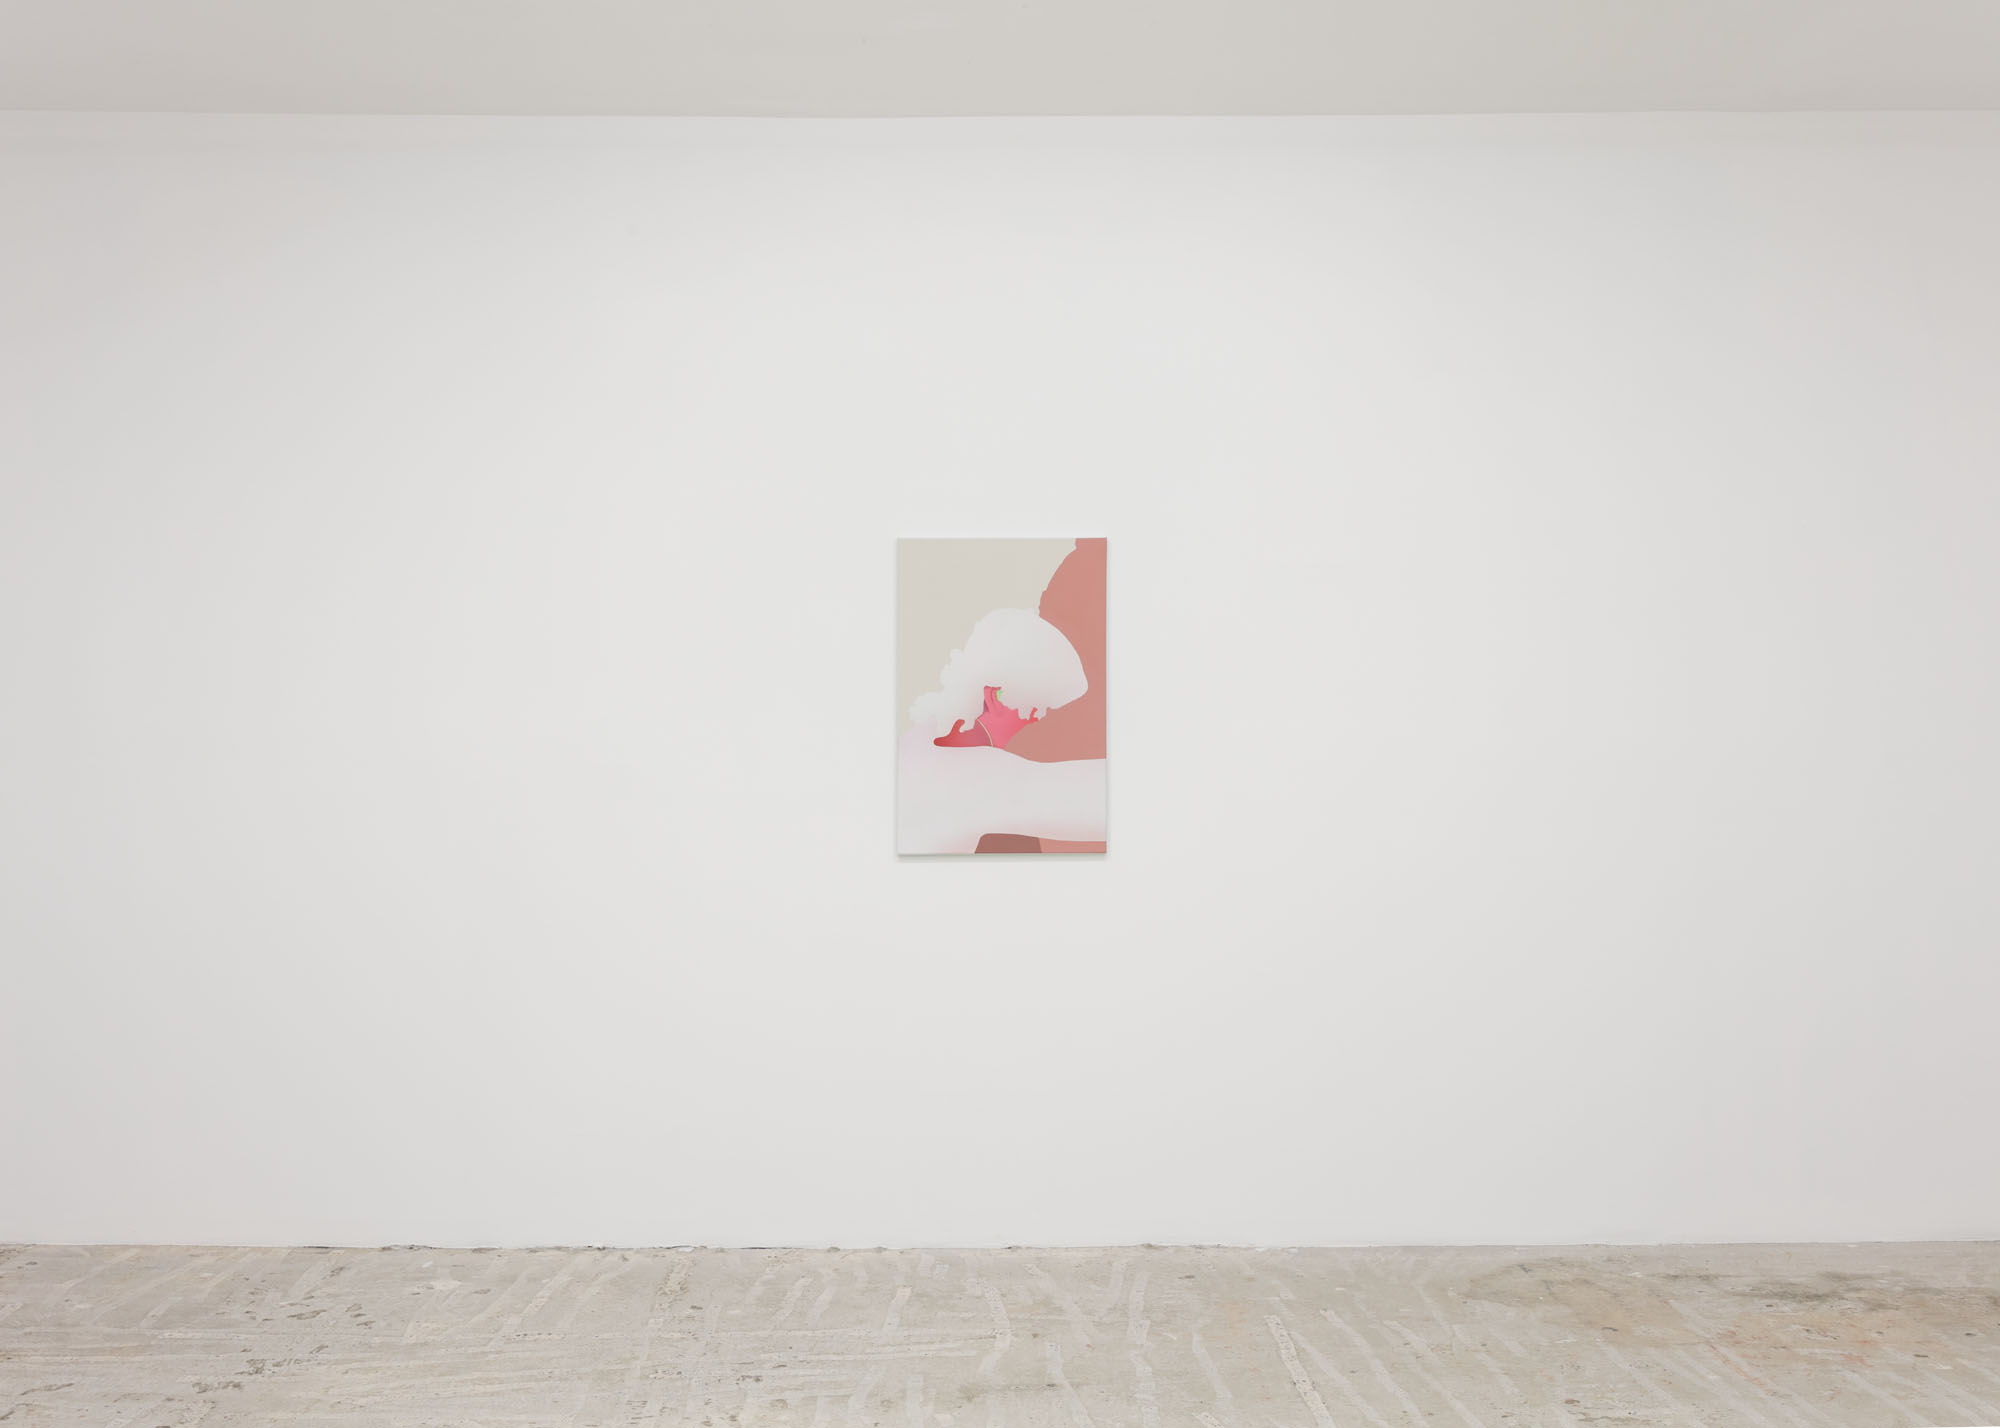 Vivian Greven  Ozu I,  2019 Oil and acrylic on canvas 31.5 x 20.87 inches (80 x 53 cm)